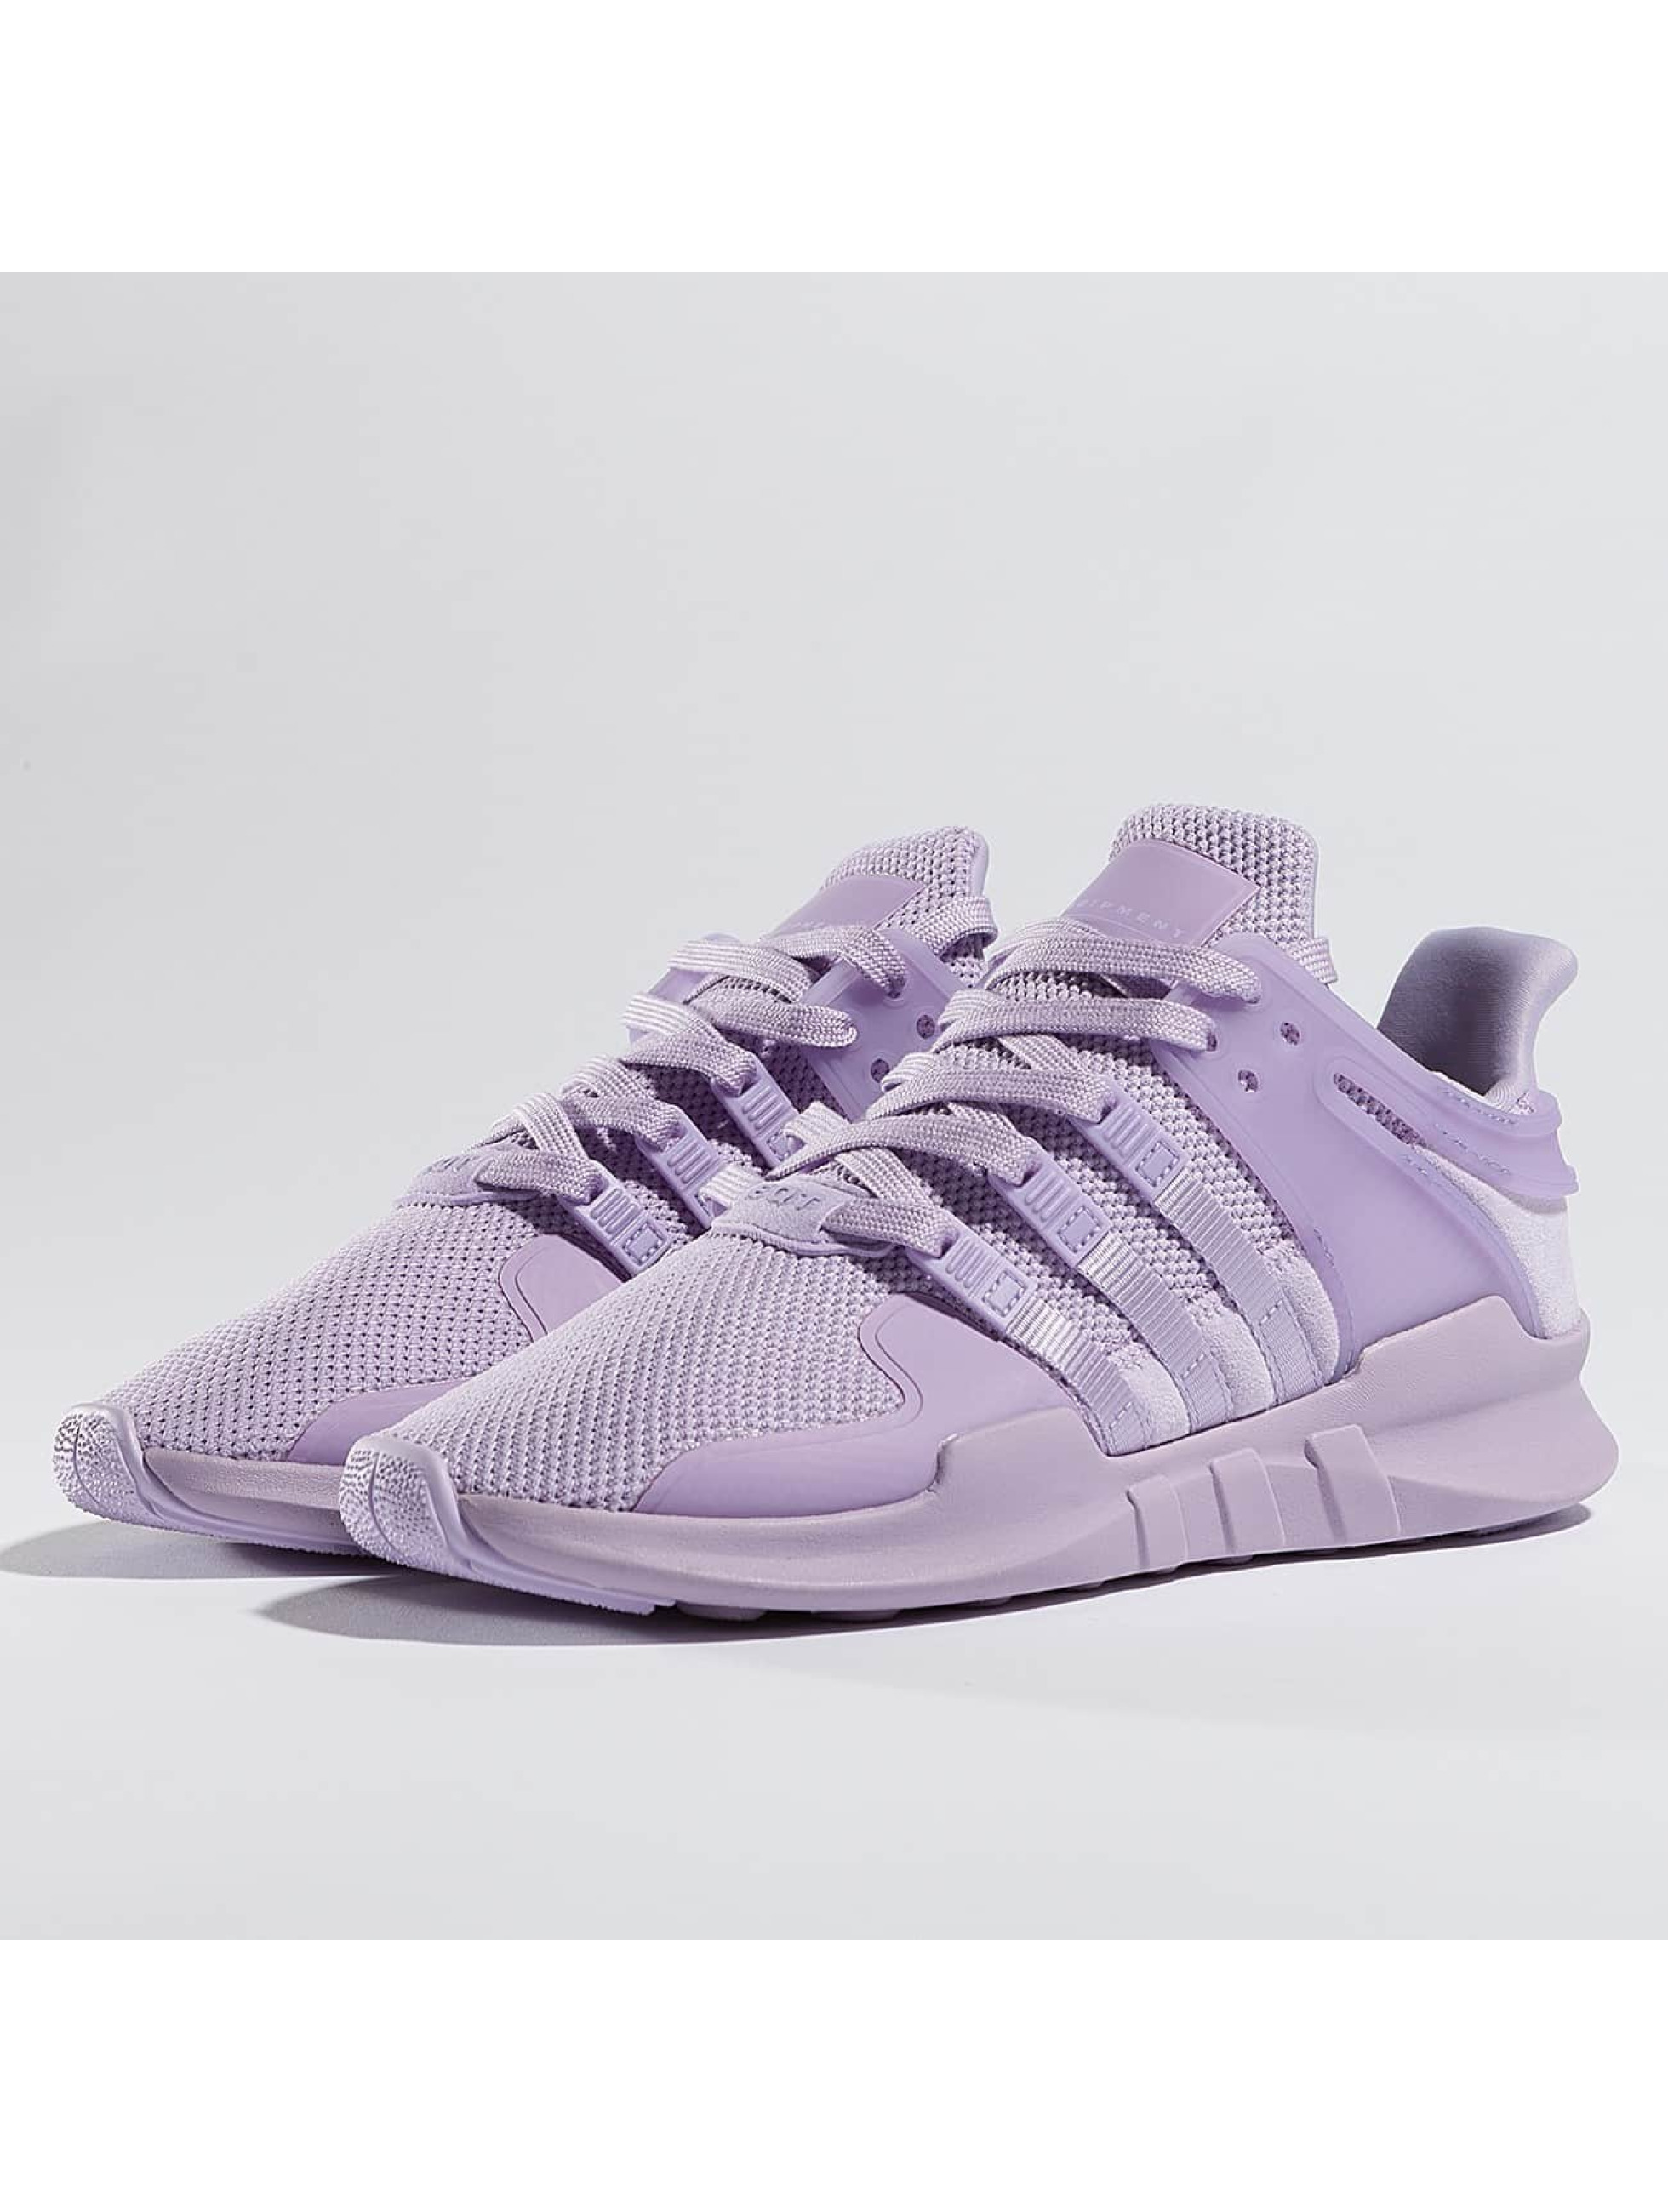 adidas Frauen Sneaker Equipment Support ADV in violet